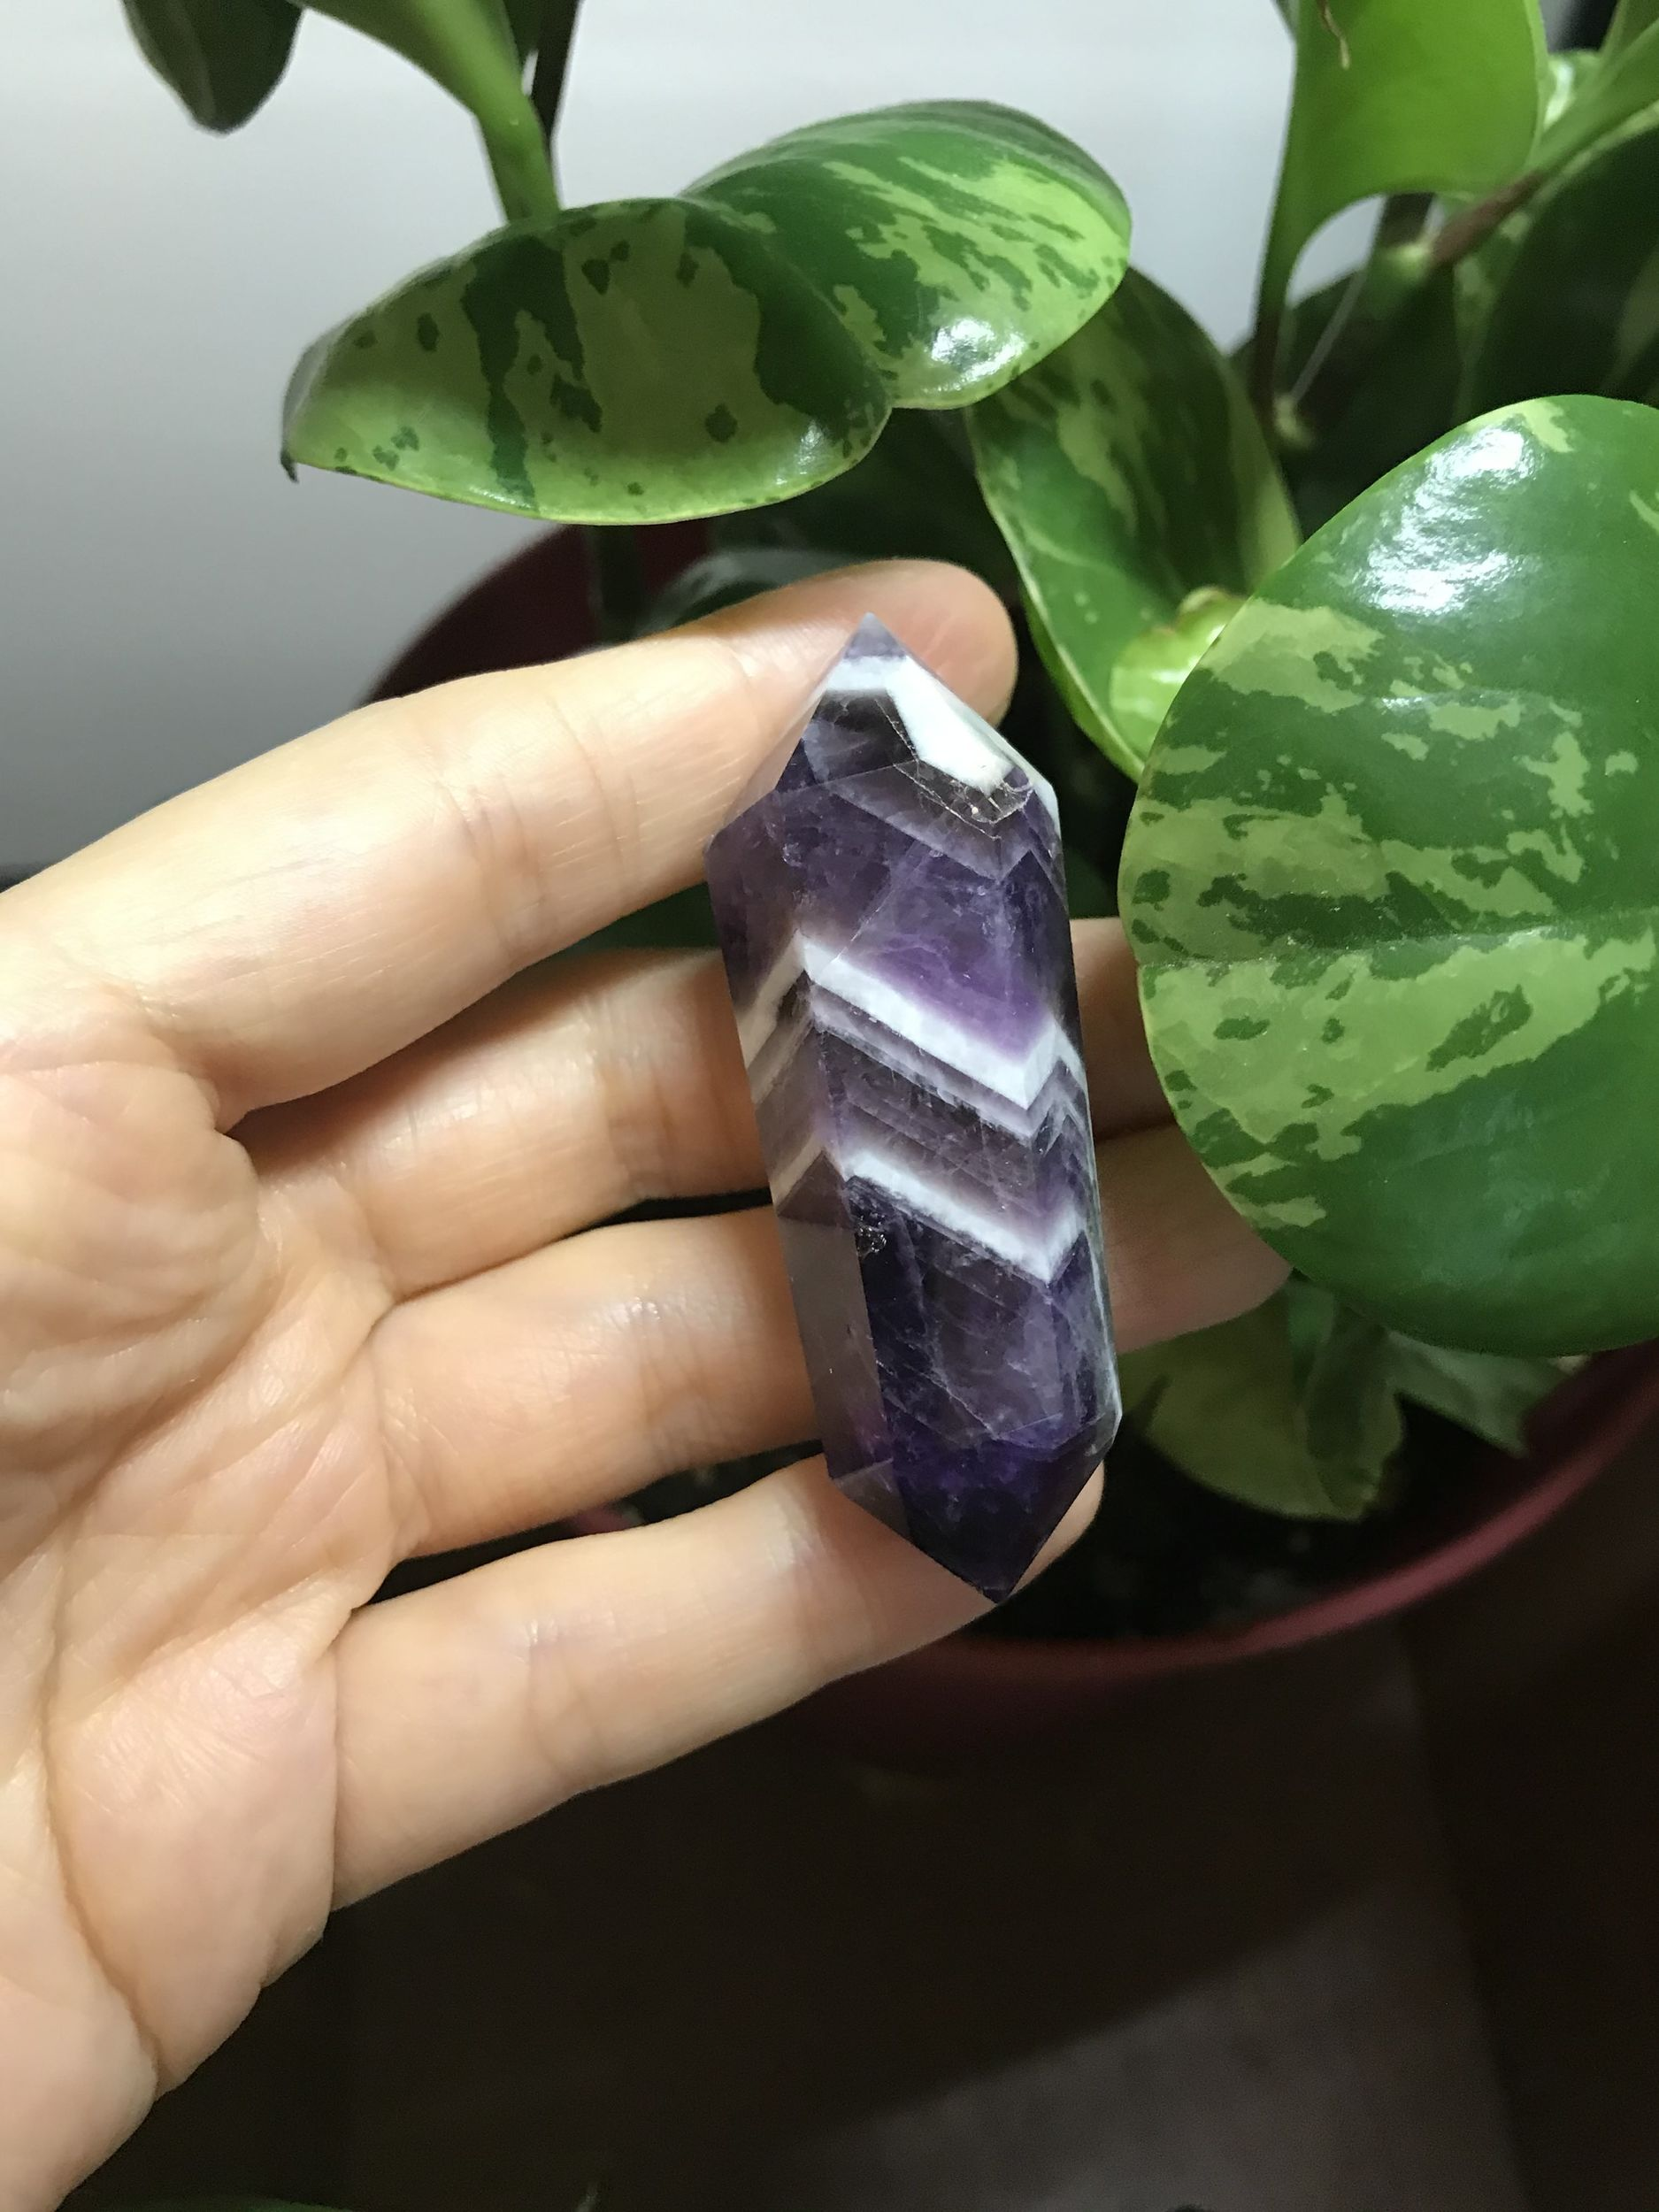 Chevron Amethyst Double Terminated Carved Crystal for Chakra Healing